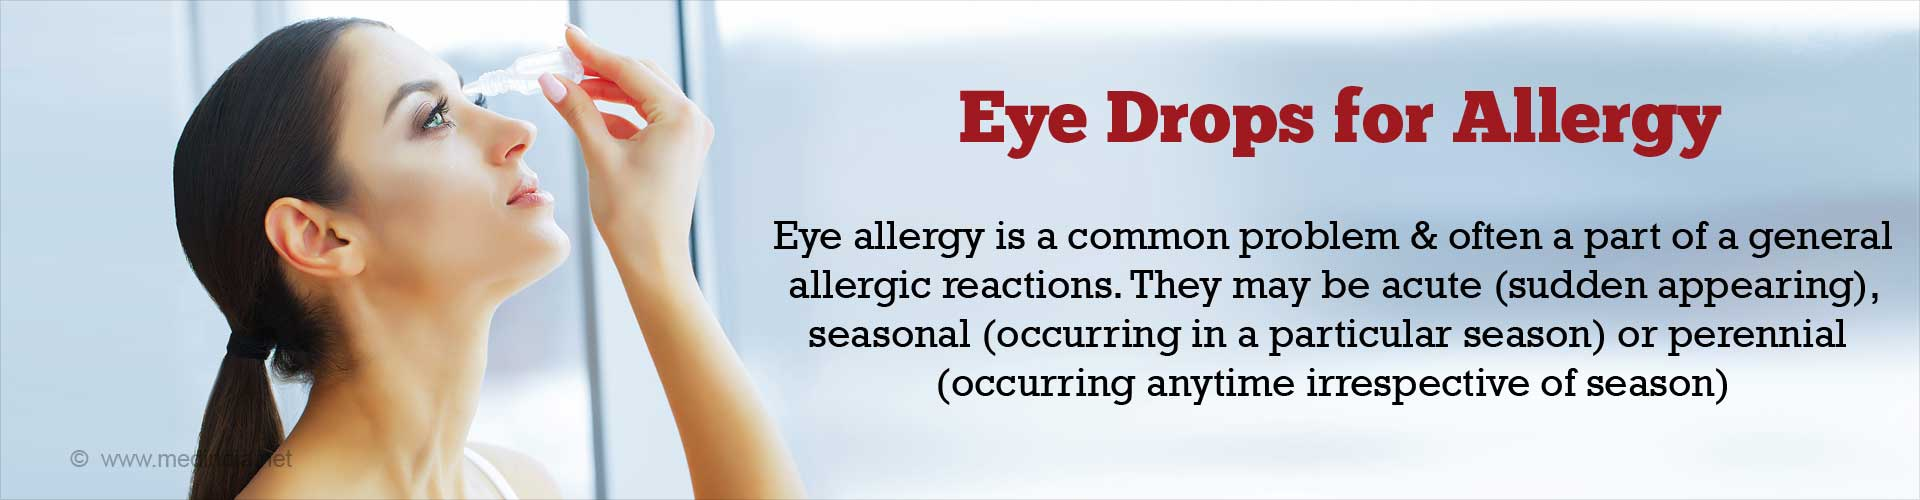 Allergy Eye drops - Types & How to Use